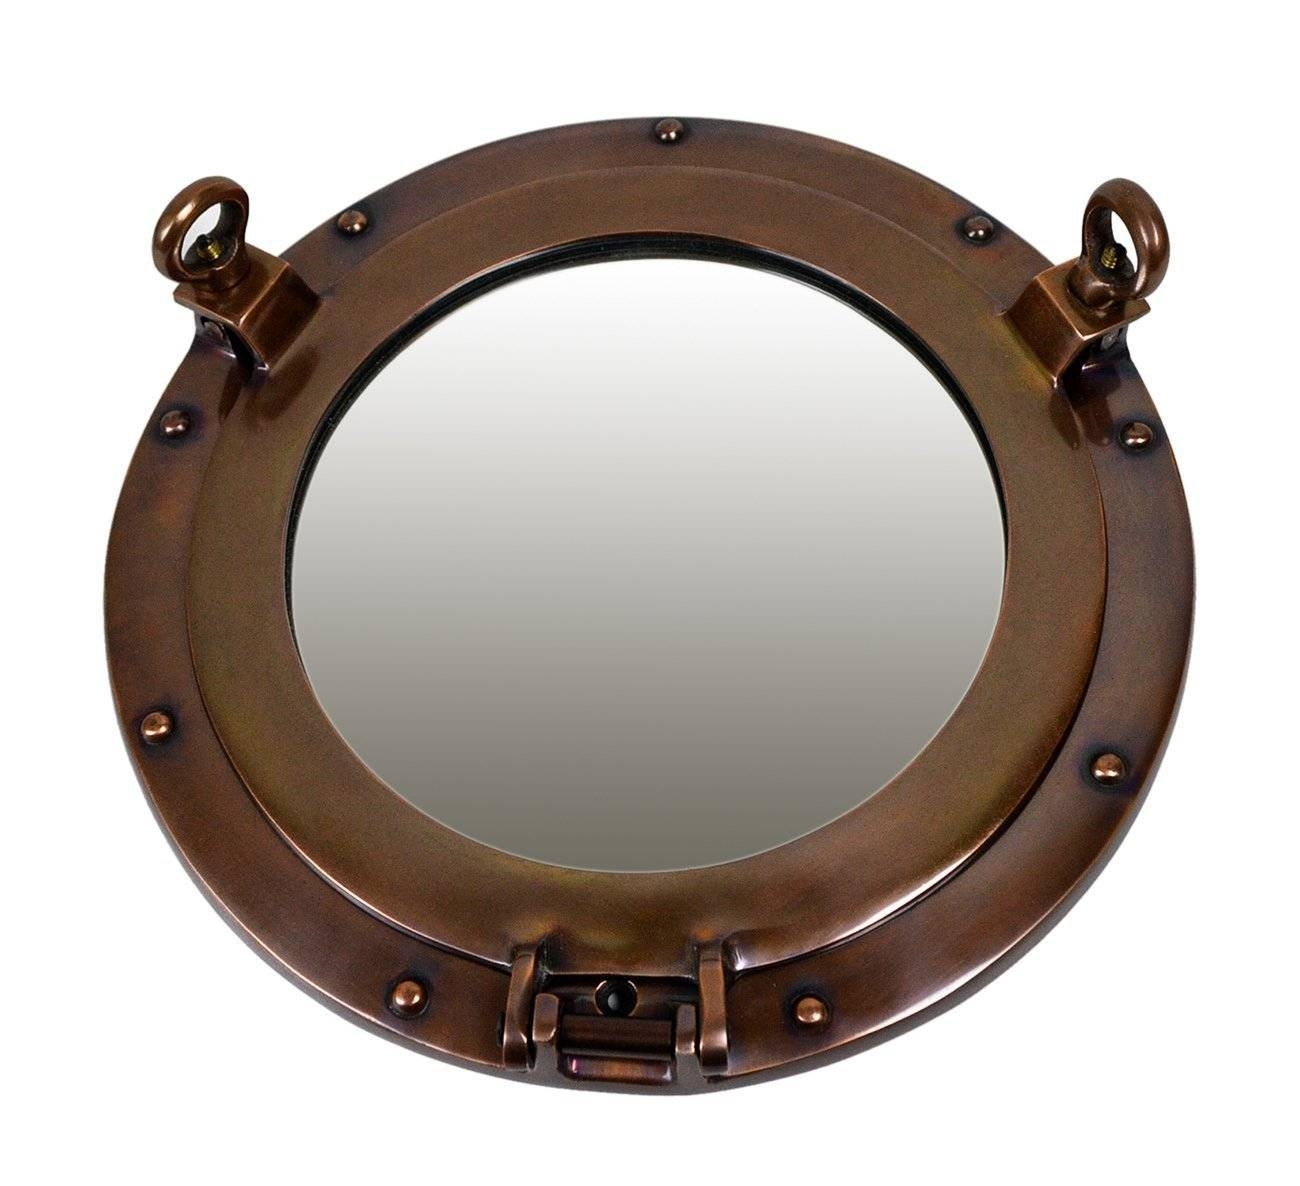 Porthole Windows Porthole Mirrors Largest Selection Ships Port Holes Pertaining To Chrome Porthole Mirrors (View 21 of 25)